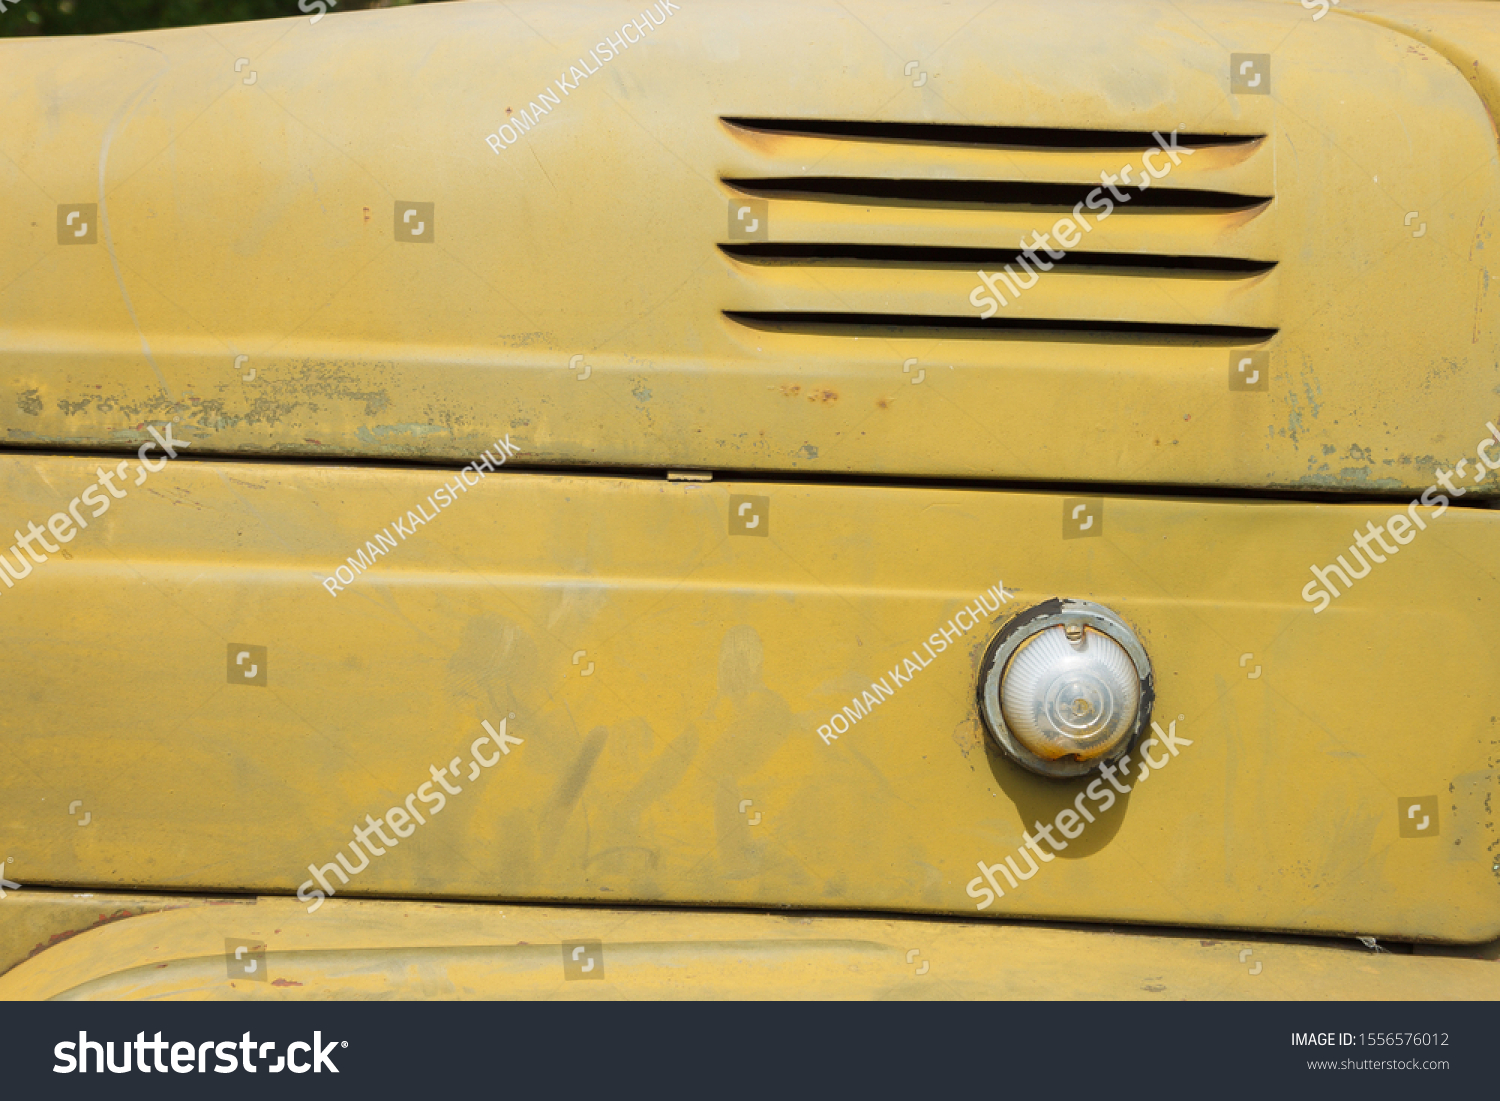 Details of the bonnet of a Soviet military truck. Side turn signal lights. Design elements and details of an old camouflage surface with exfoliated paint on a military truck. Car detail. Close-up #1556576012